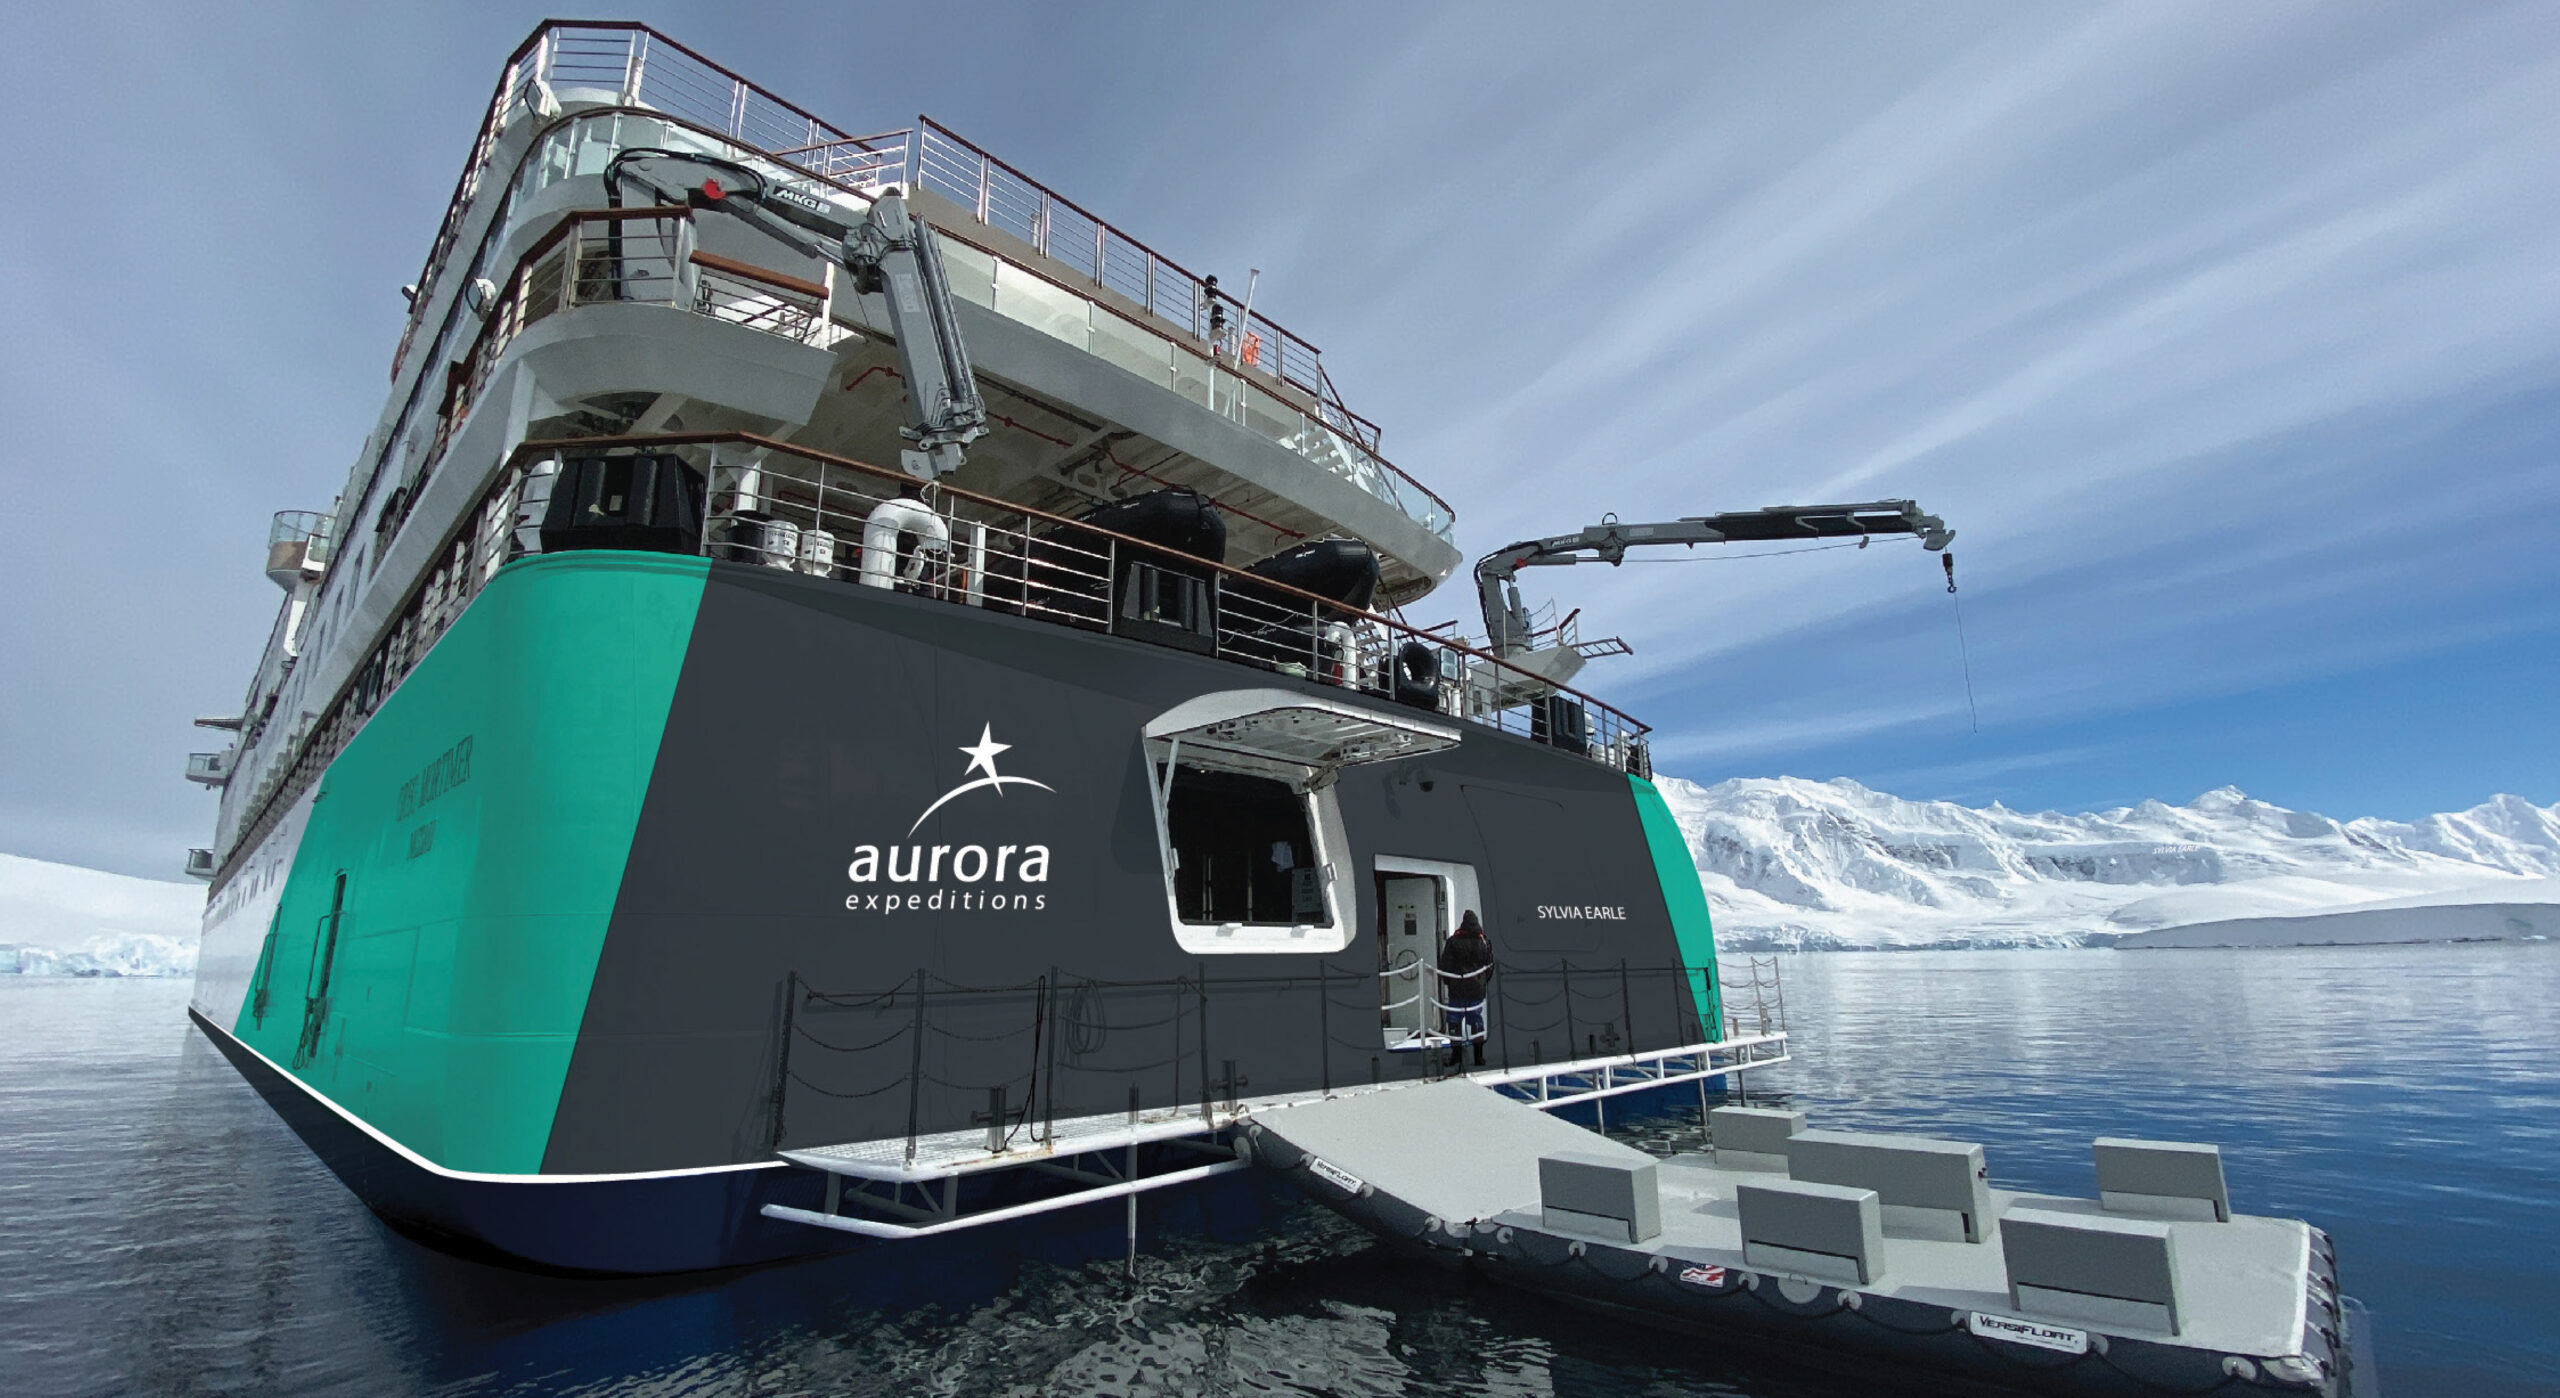 Aurora Expeditions, Sylvia Earle